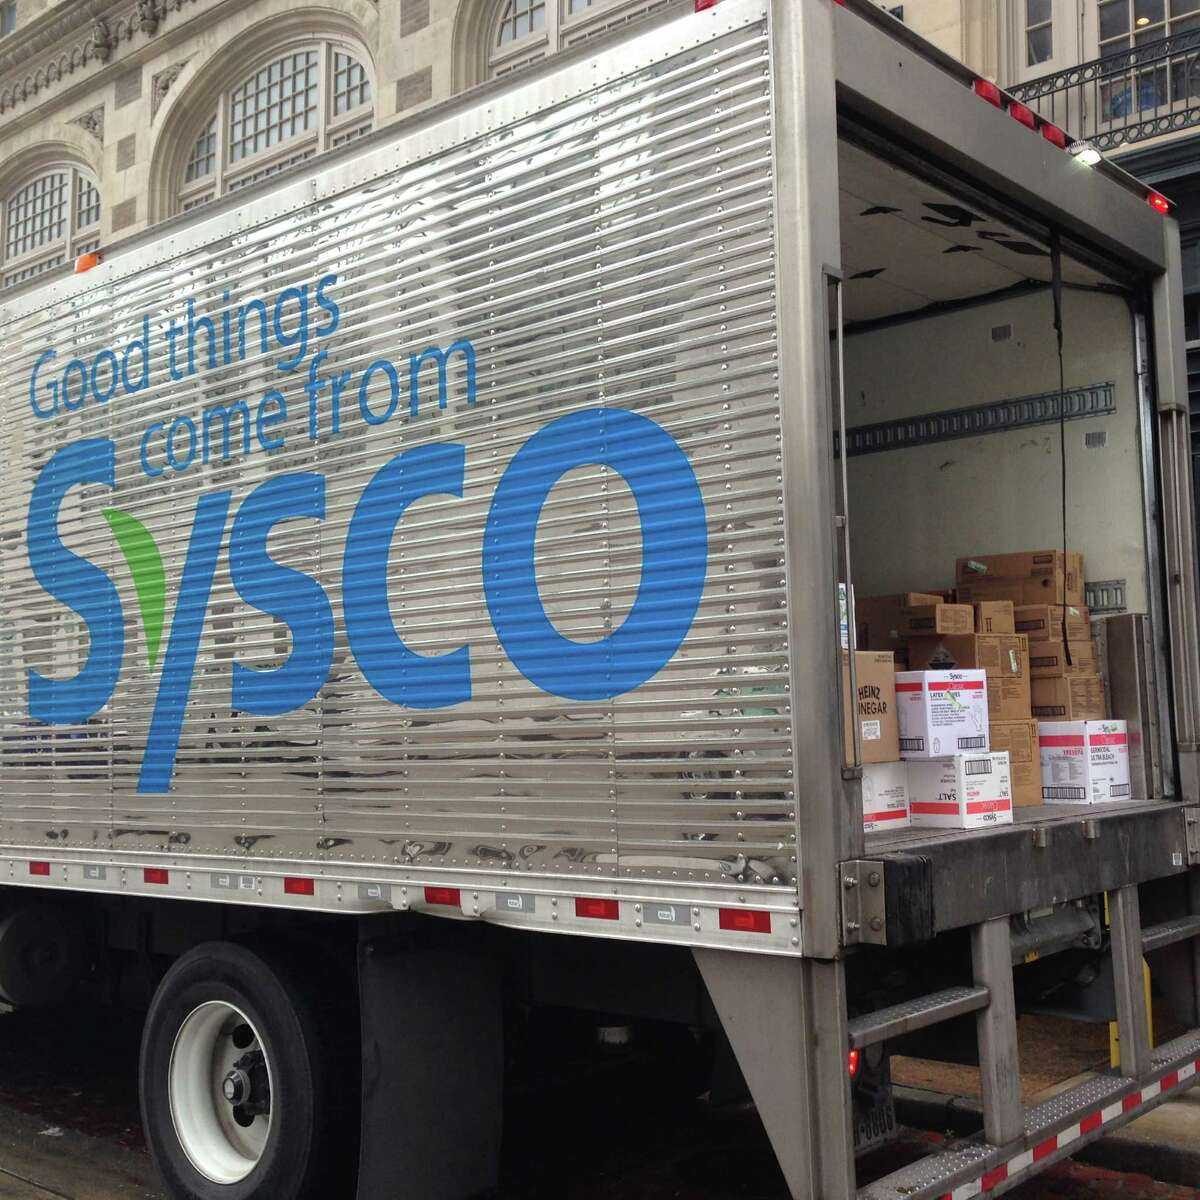 Sysco, a Houston-based food distribution company, wanted to buy its largest competitor US Foods for $3.5 billion, but a federal judge threw a wrench in its plans by granting federal regulators a temporary injunction. With events continuing to unfold, take a look at the top 10 merger and acquisition deals on record, according to research firm Dealogic.